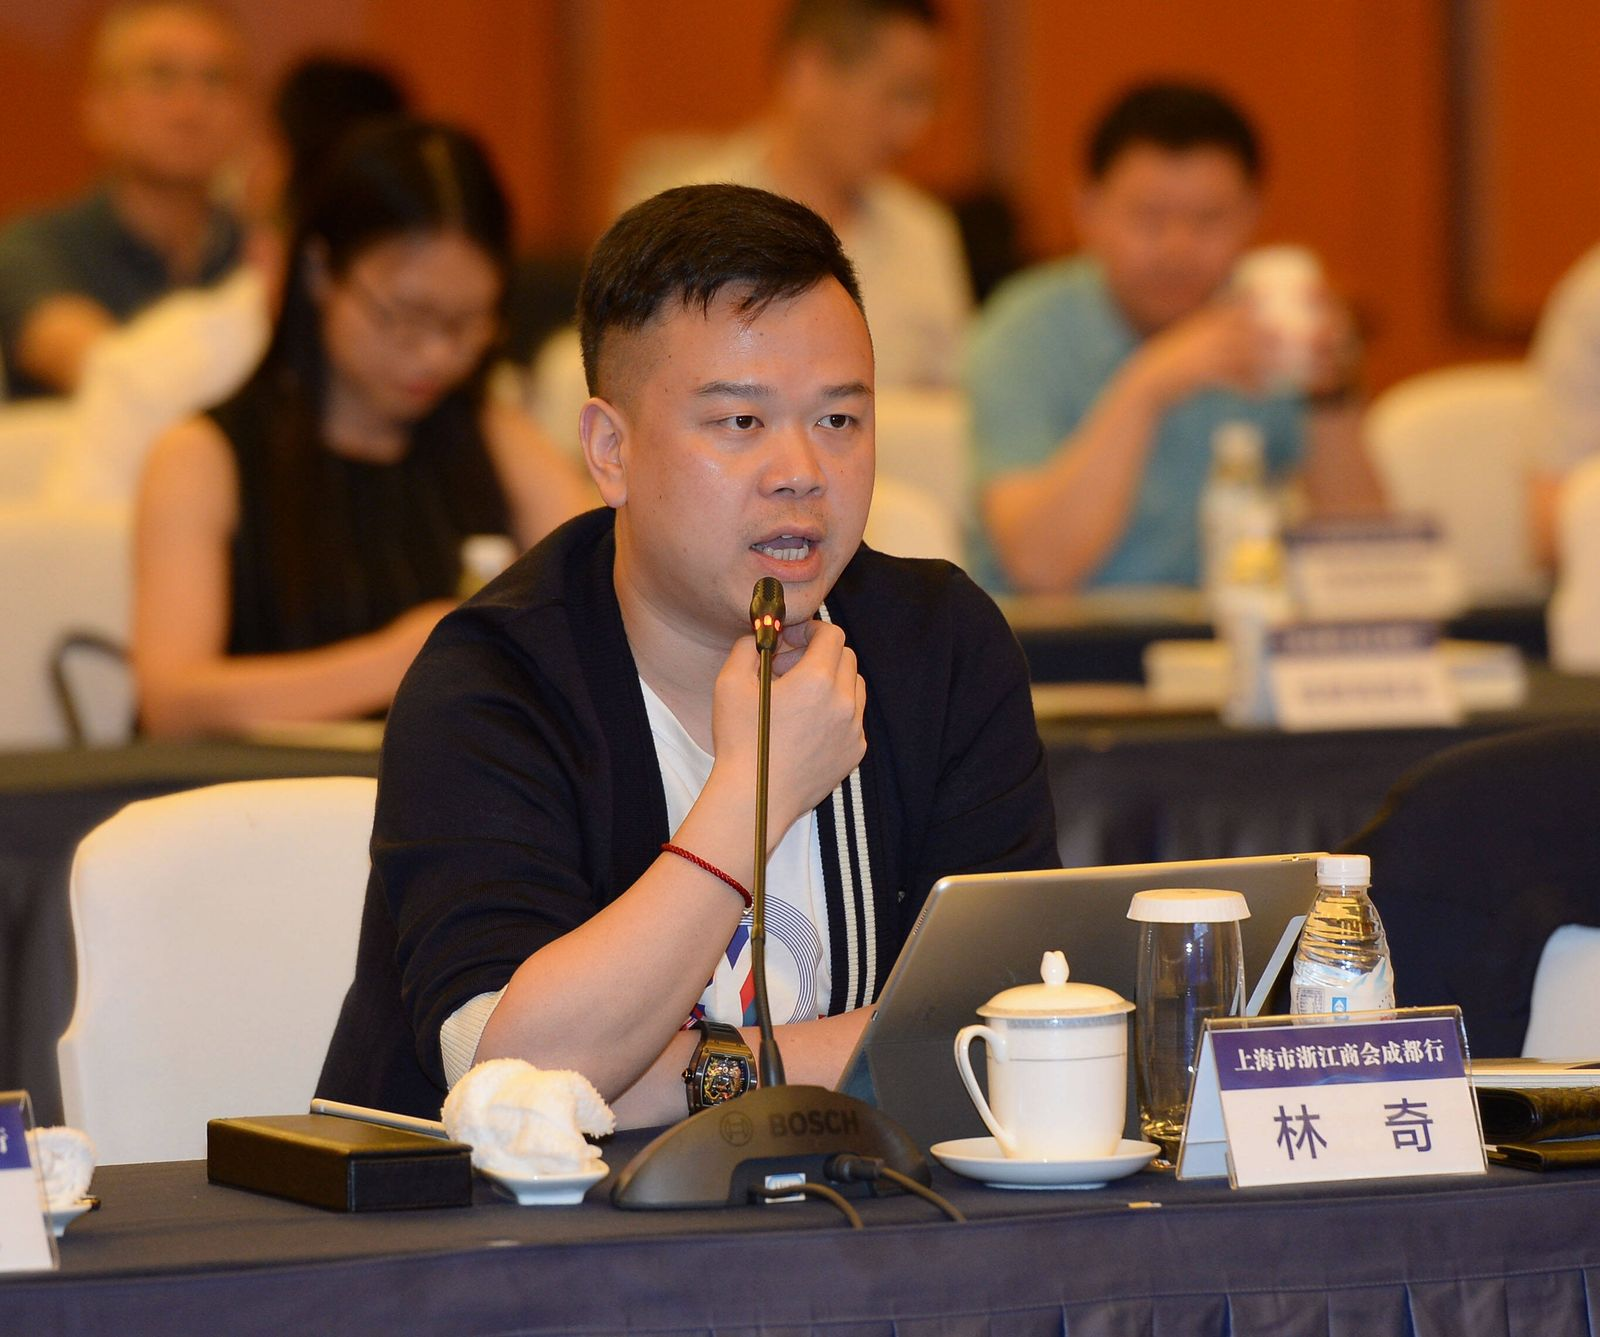 CHENGDU, CHINA - MAY 25: Lin Qi, Chairman and CEO of Yoozoo Games Co., Ltd, speaks during a meeting on May 25, 2018 in C